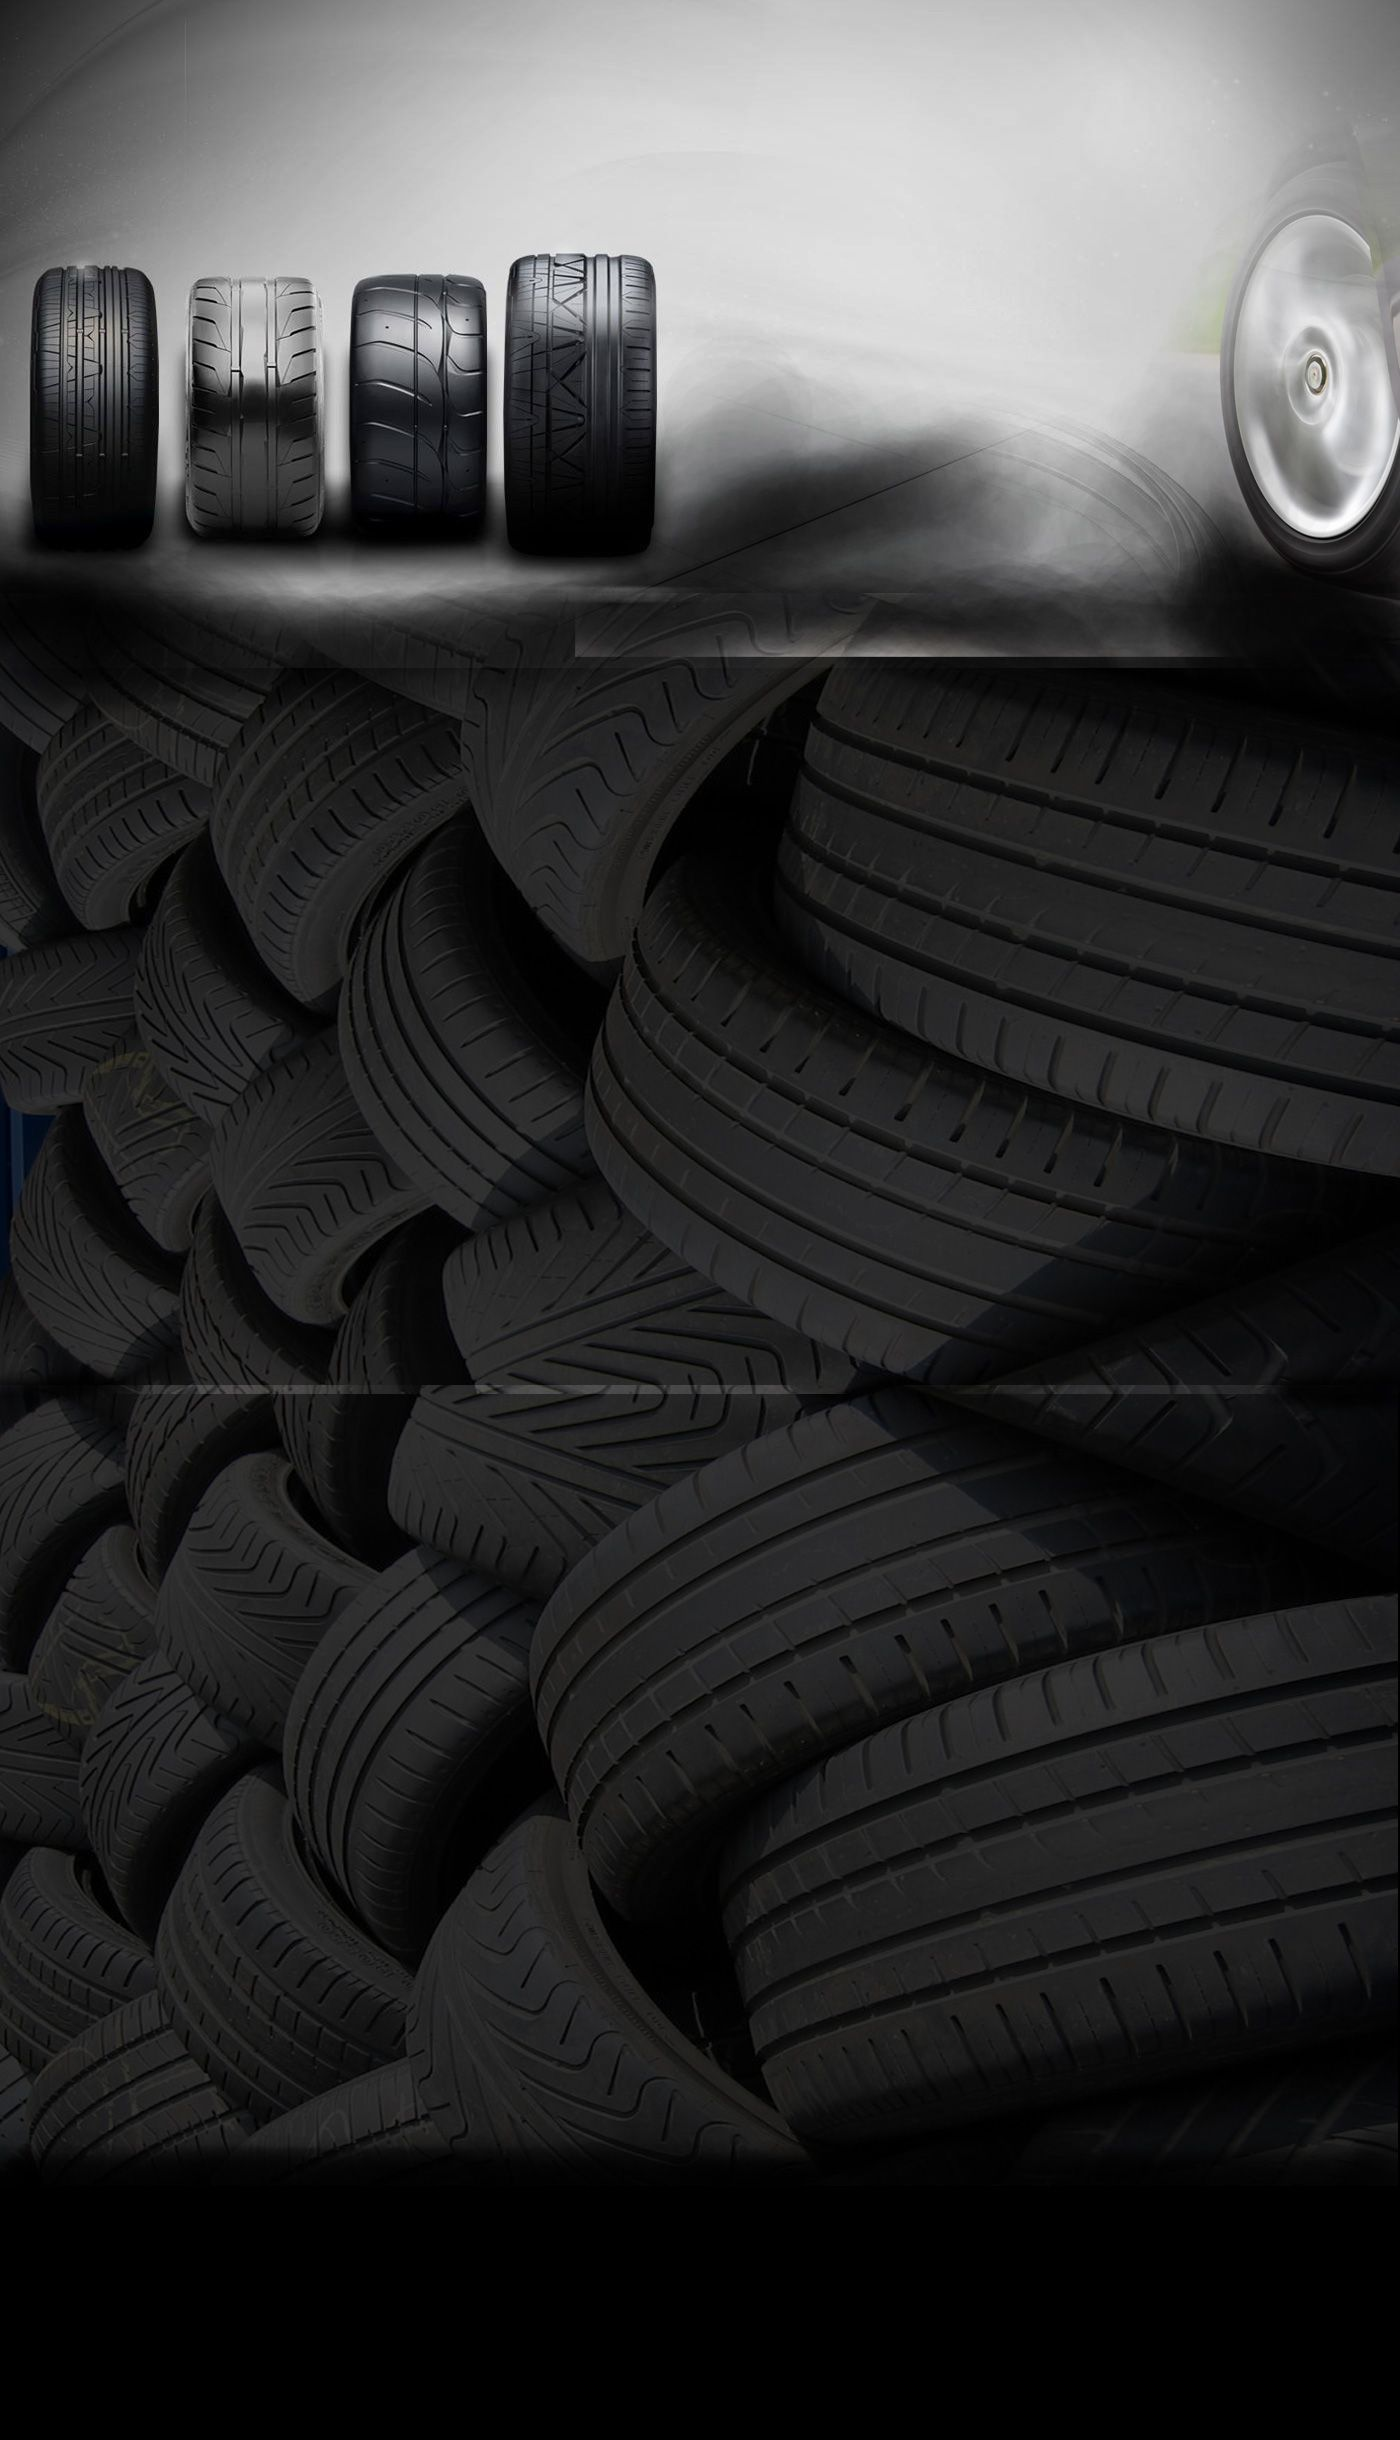 Part Worn Tyres Are The Used Tyres But They Have A Good Thickness Of